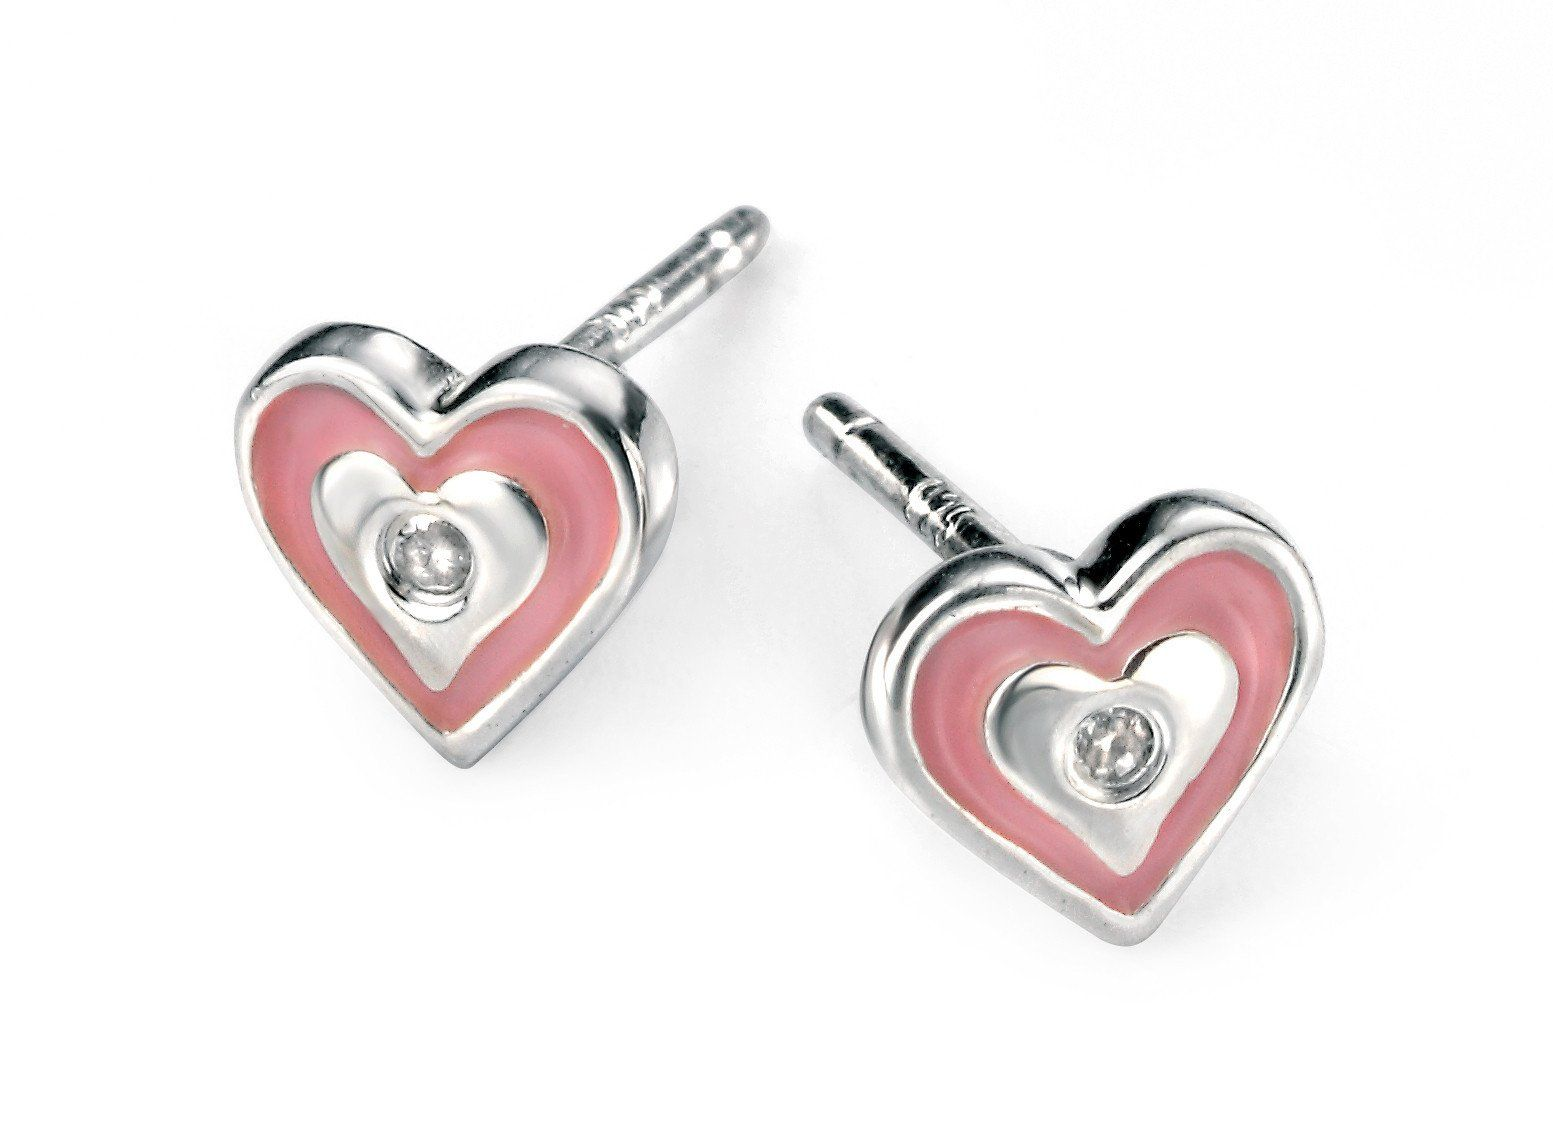 Childrens Sterling Silver Heart Stud Earrings SV4820E - Jay's Jewellery